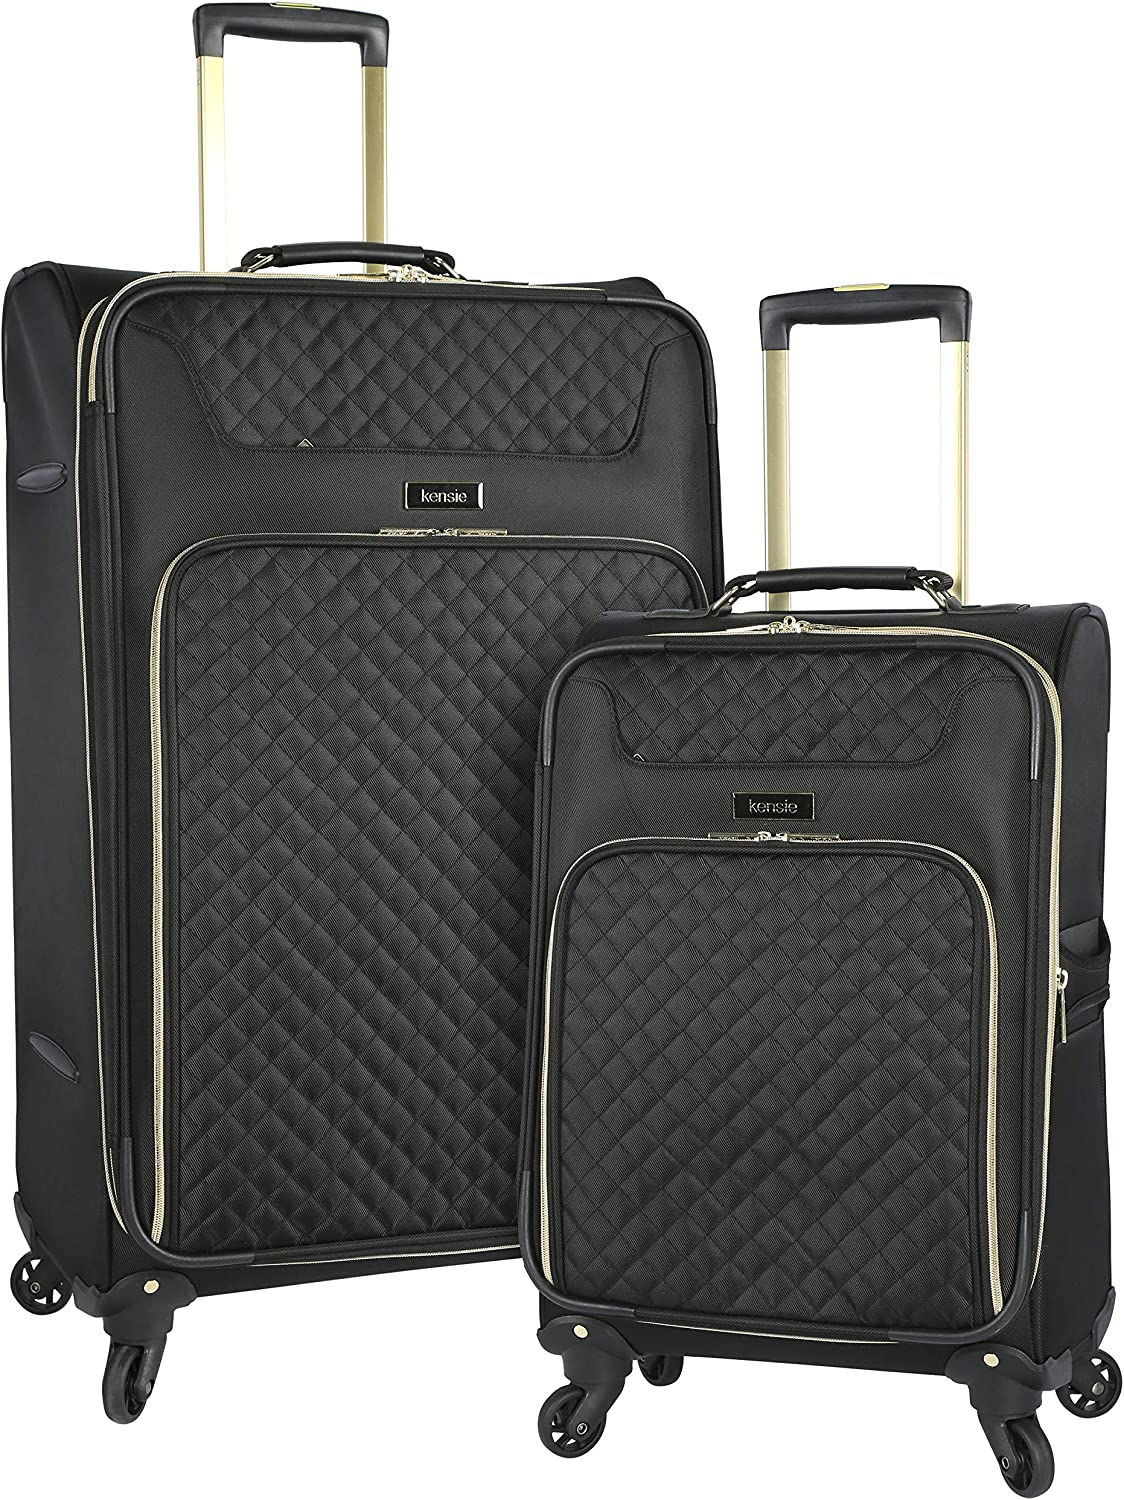 kensie 2 Piece Twill Luggage Set Black with Gold Color Option Travelers Club Luggage KN-77302-001